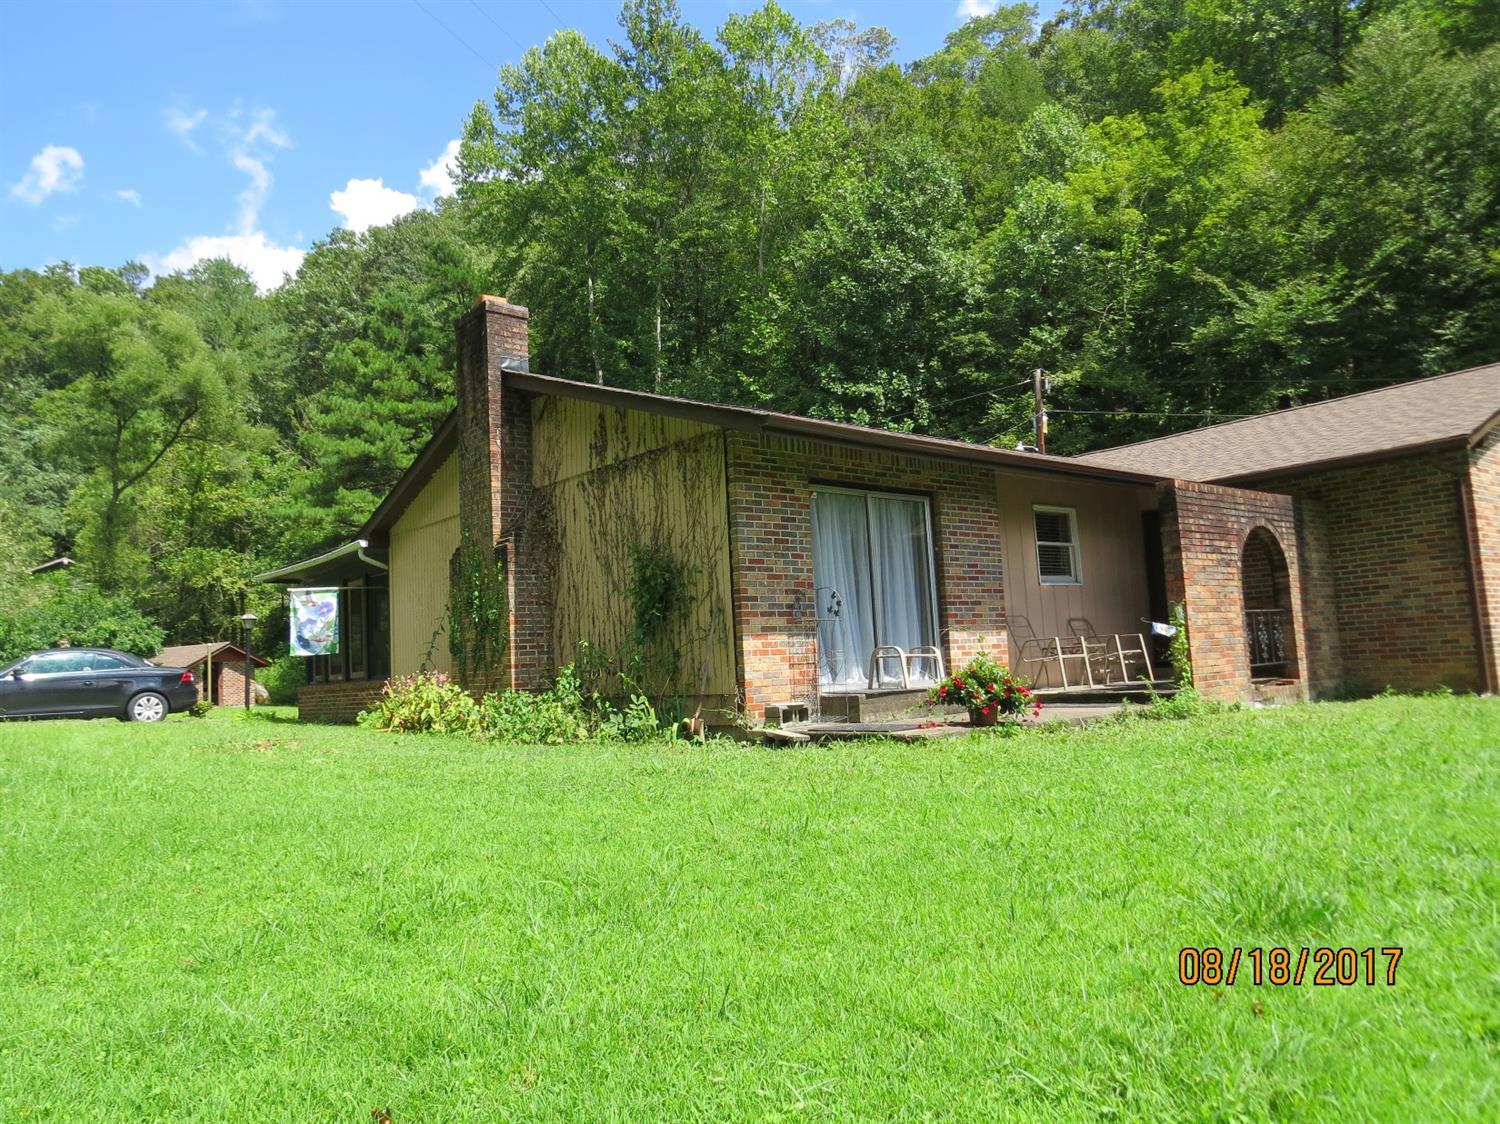 4518 SOUTH US HIGHWAY 119, WALLINS, KY 40873  Photo 2